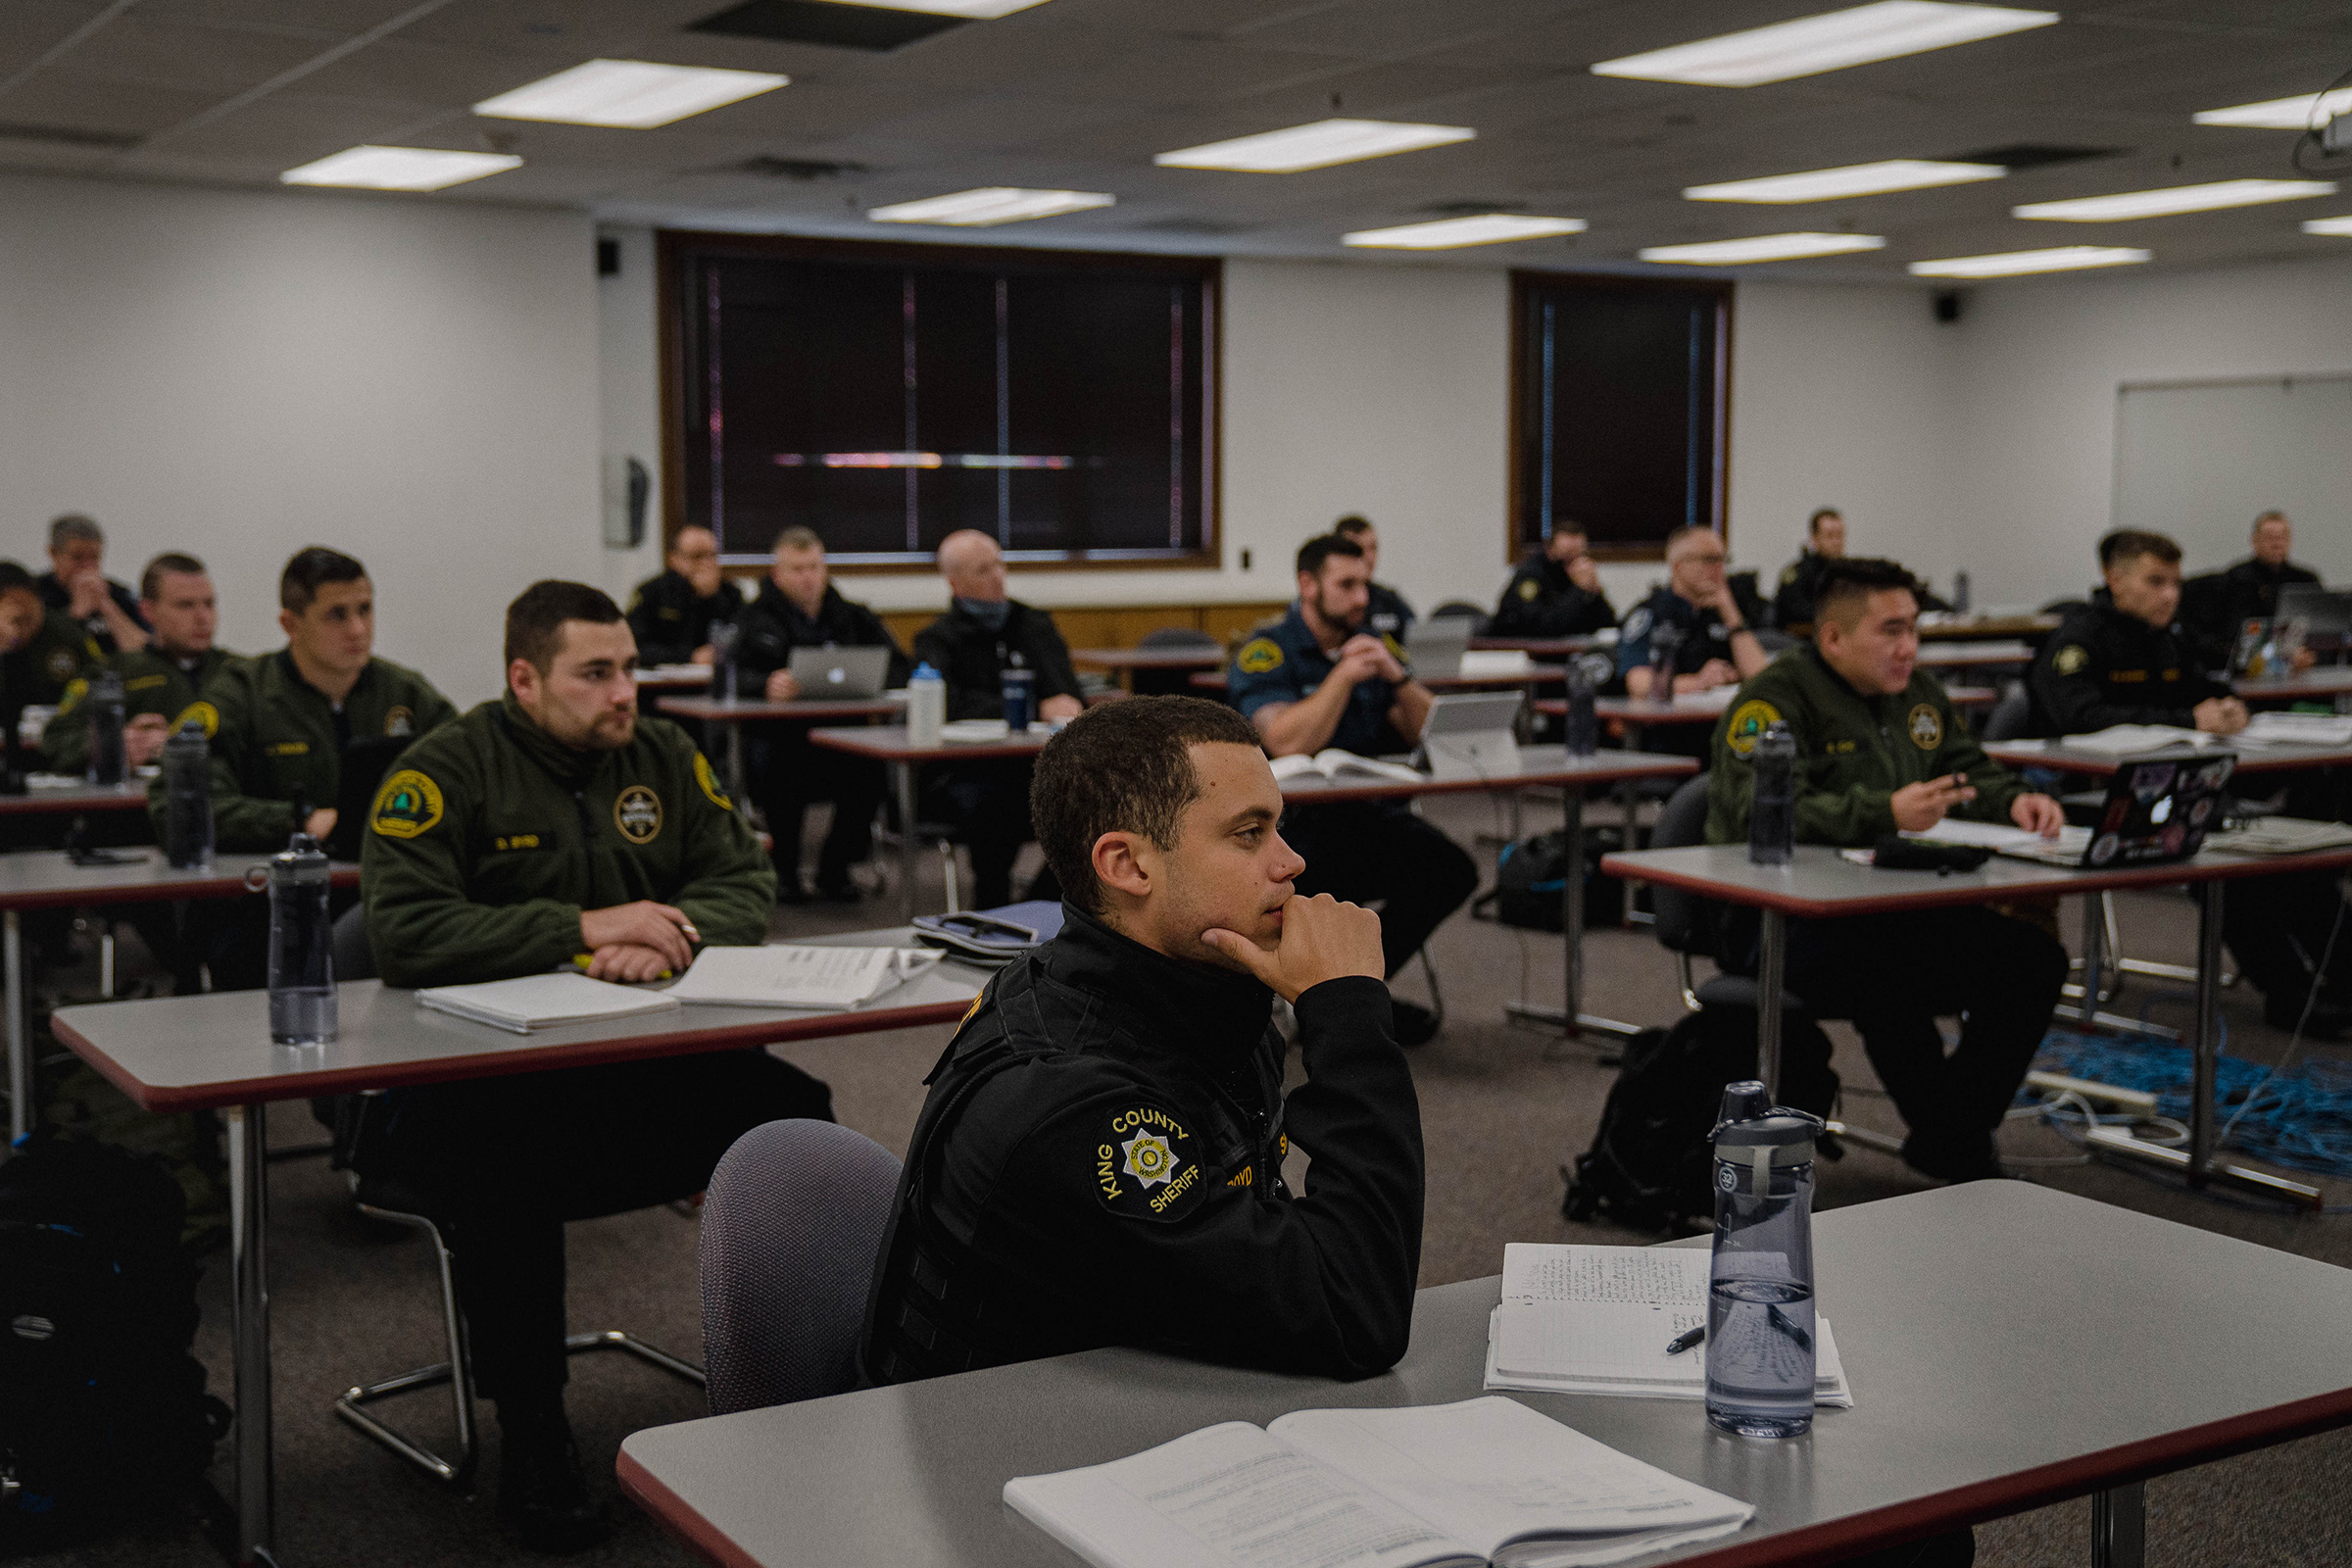 Recruits attend a criminal law class.